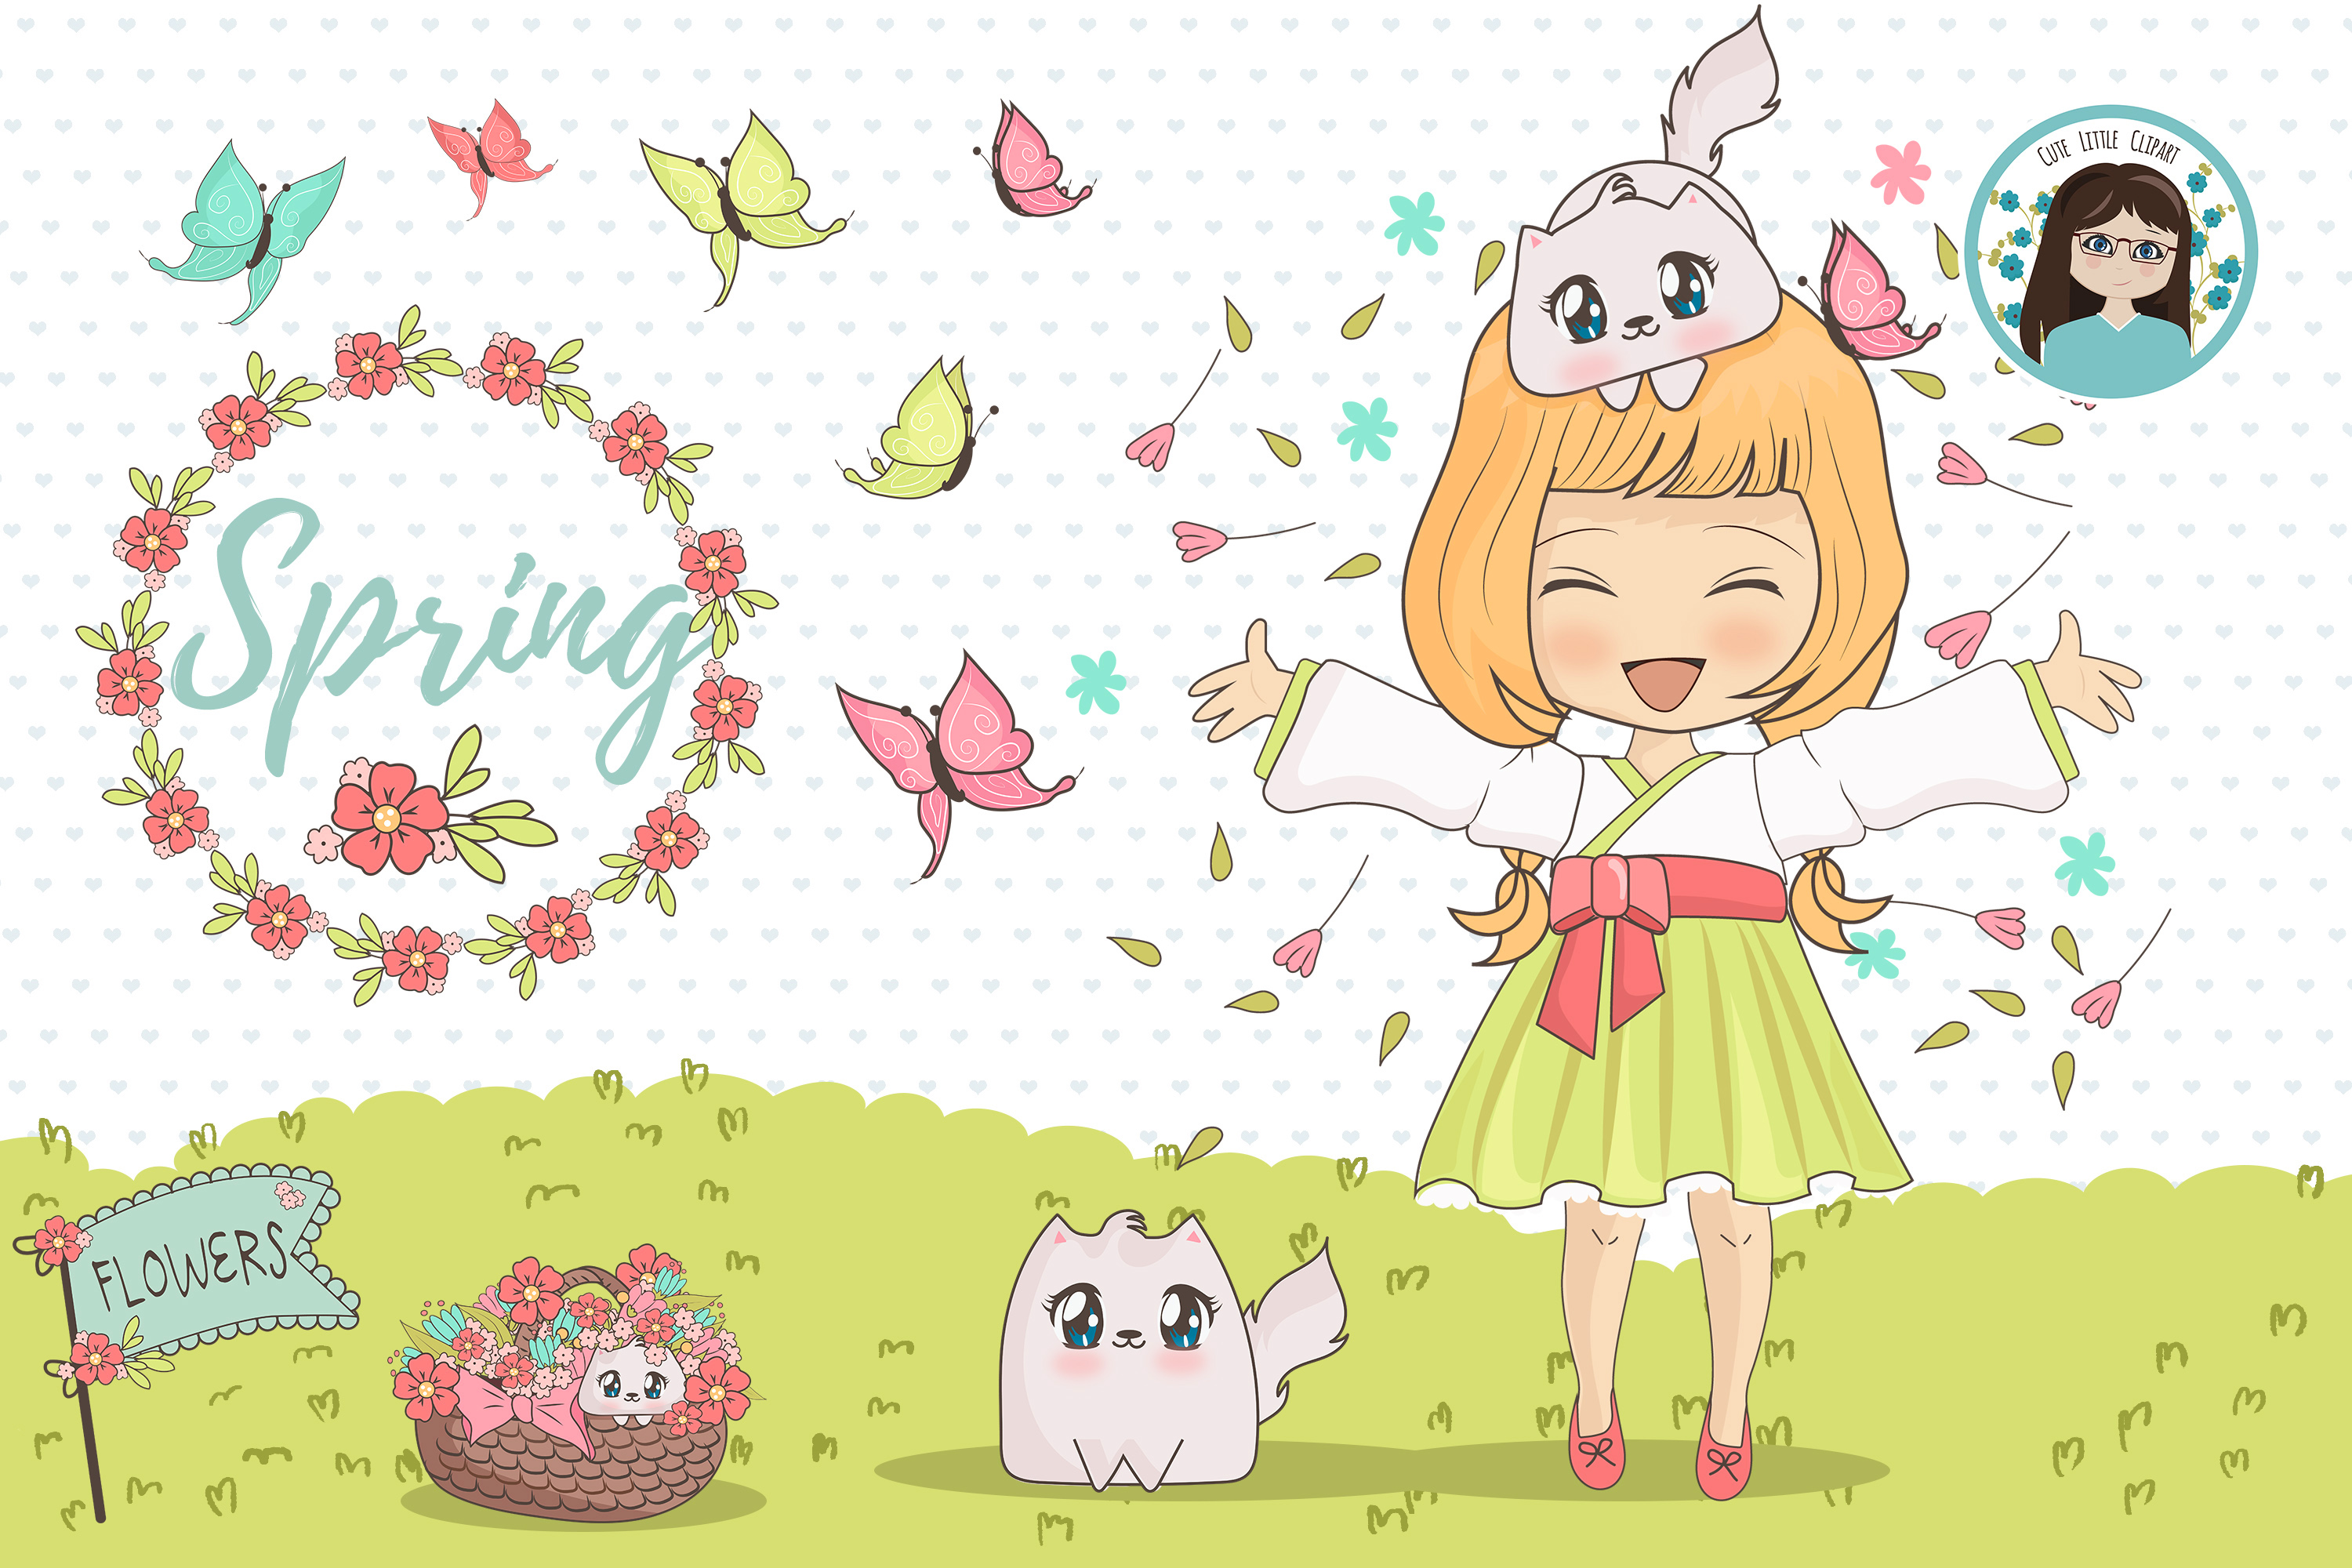 Spring chibi characters example image 2